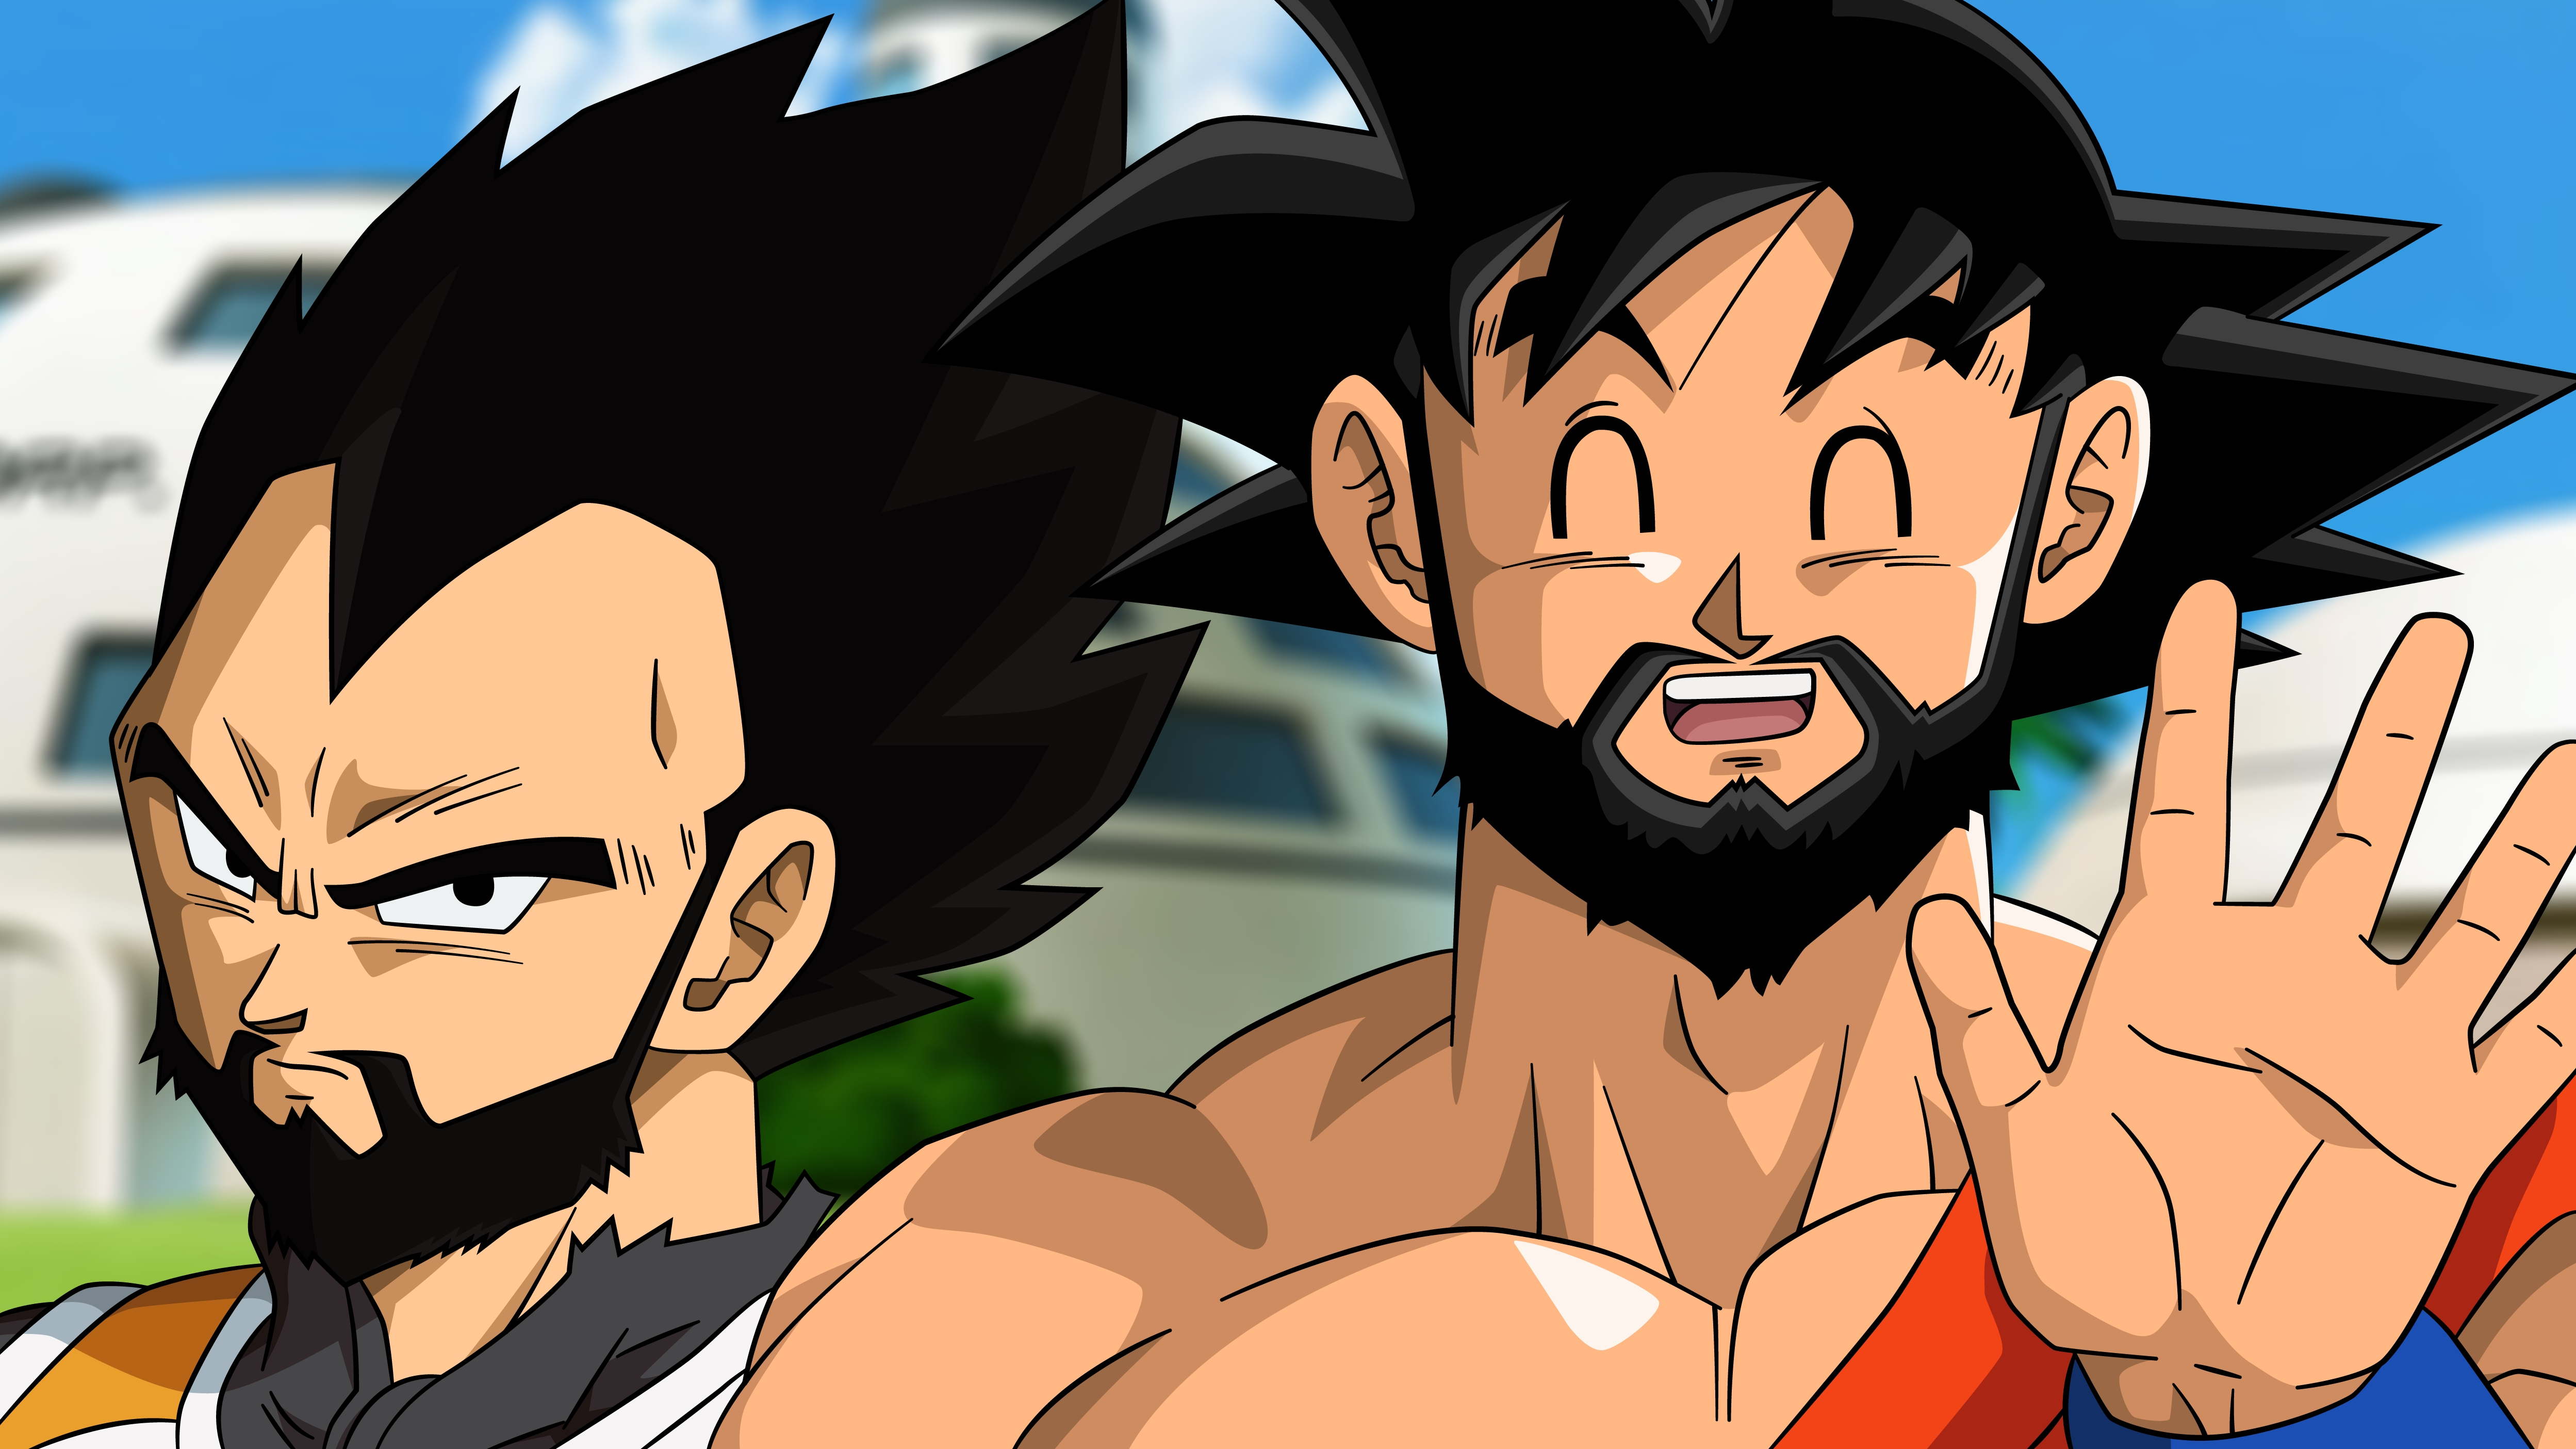 Fondos de pantalla Anime Goku Vegeta con barba Dragon Ball